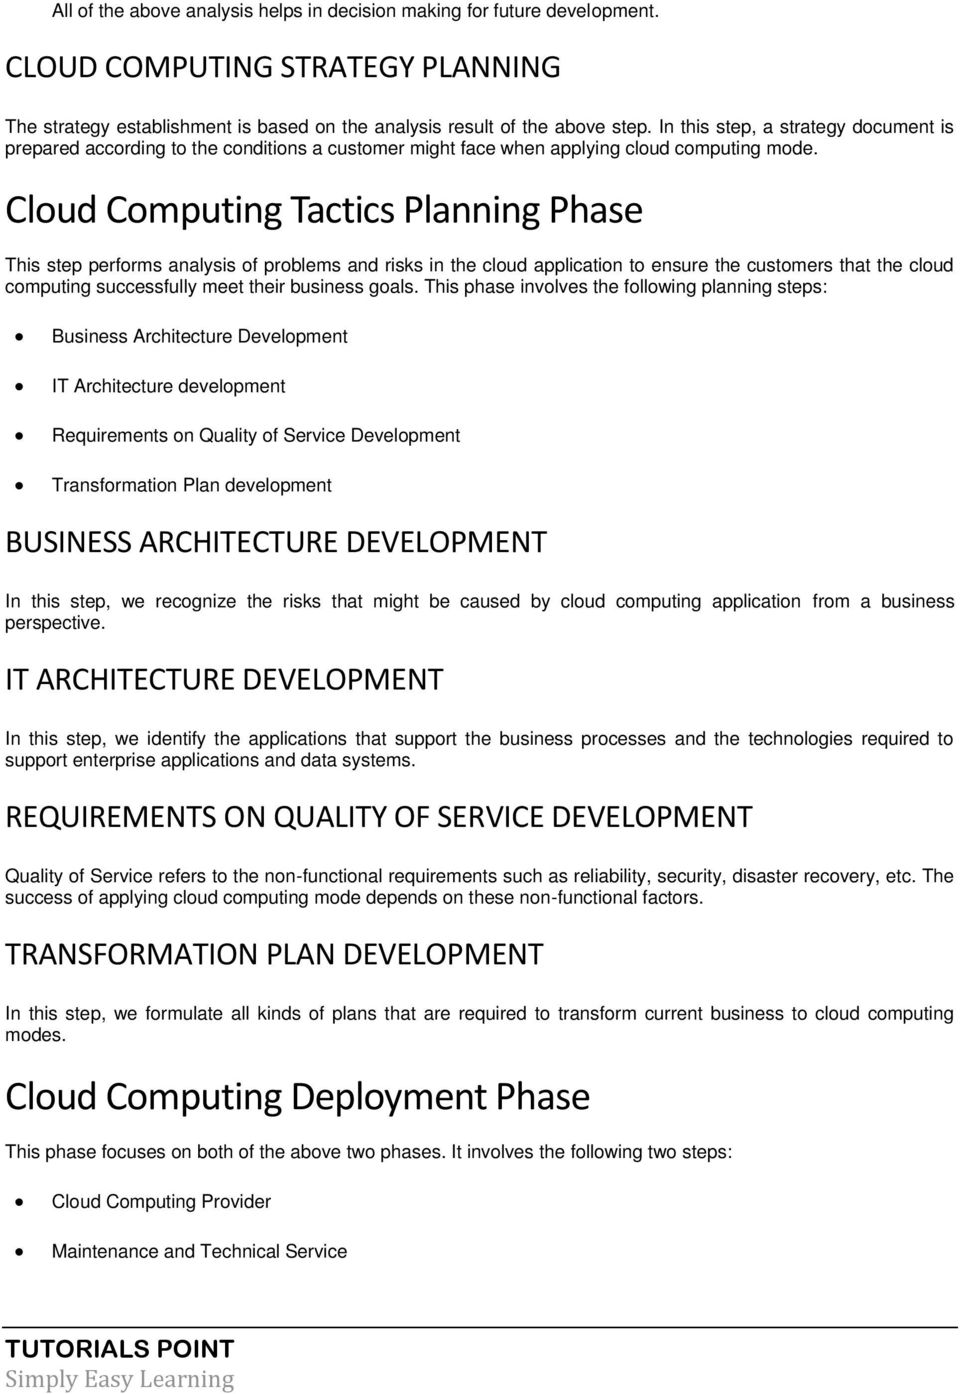 Cloud Computing Tactics Planning Phase This step performs analysis of problems and risks in the cloud application to ensure the customers that the cloud computing successfully meet their business